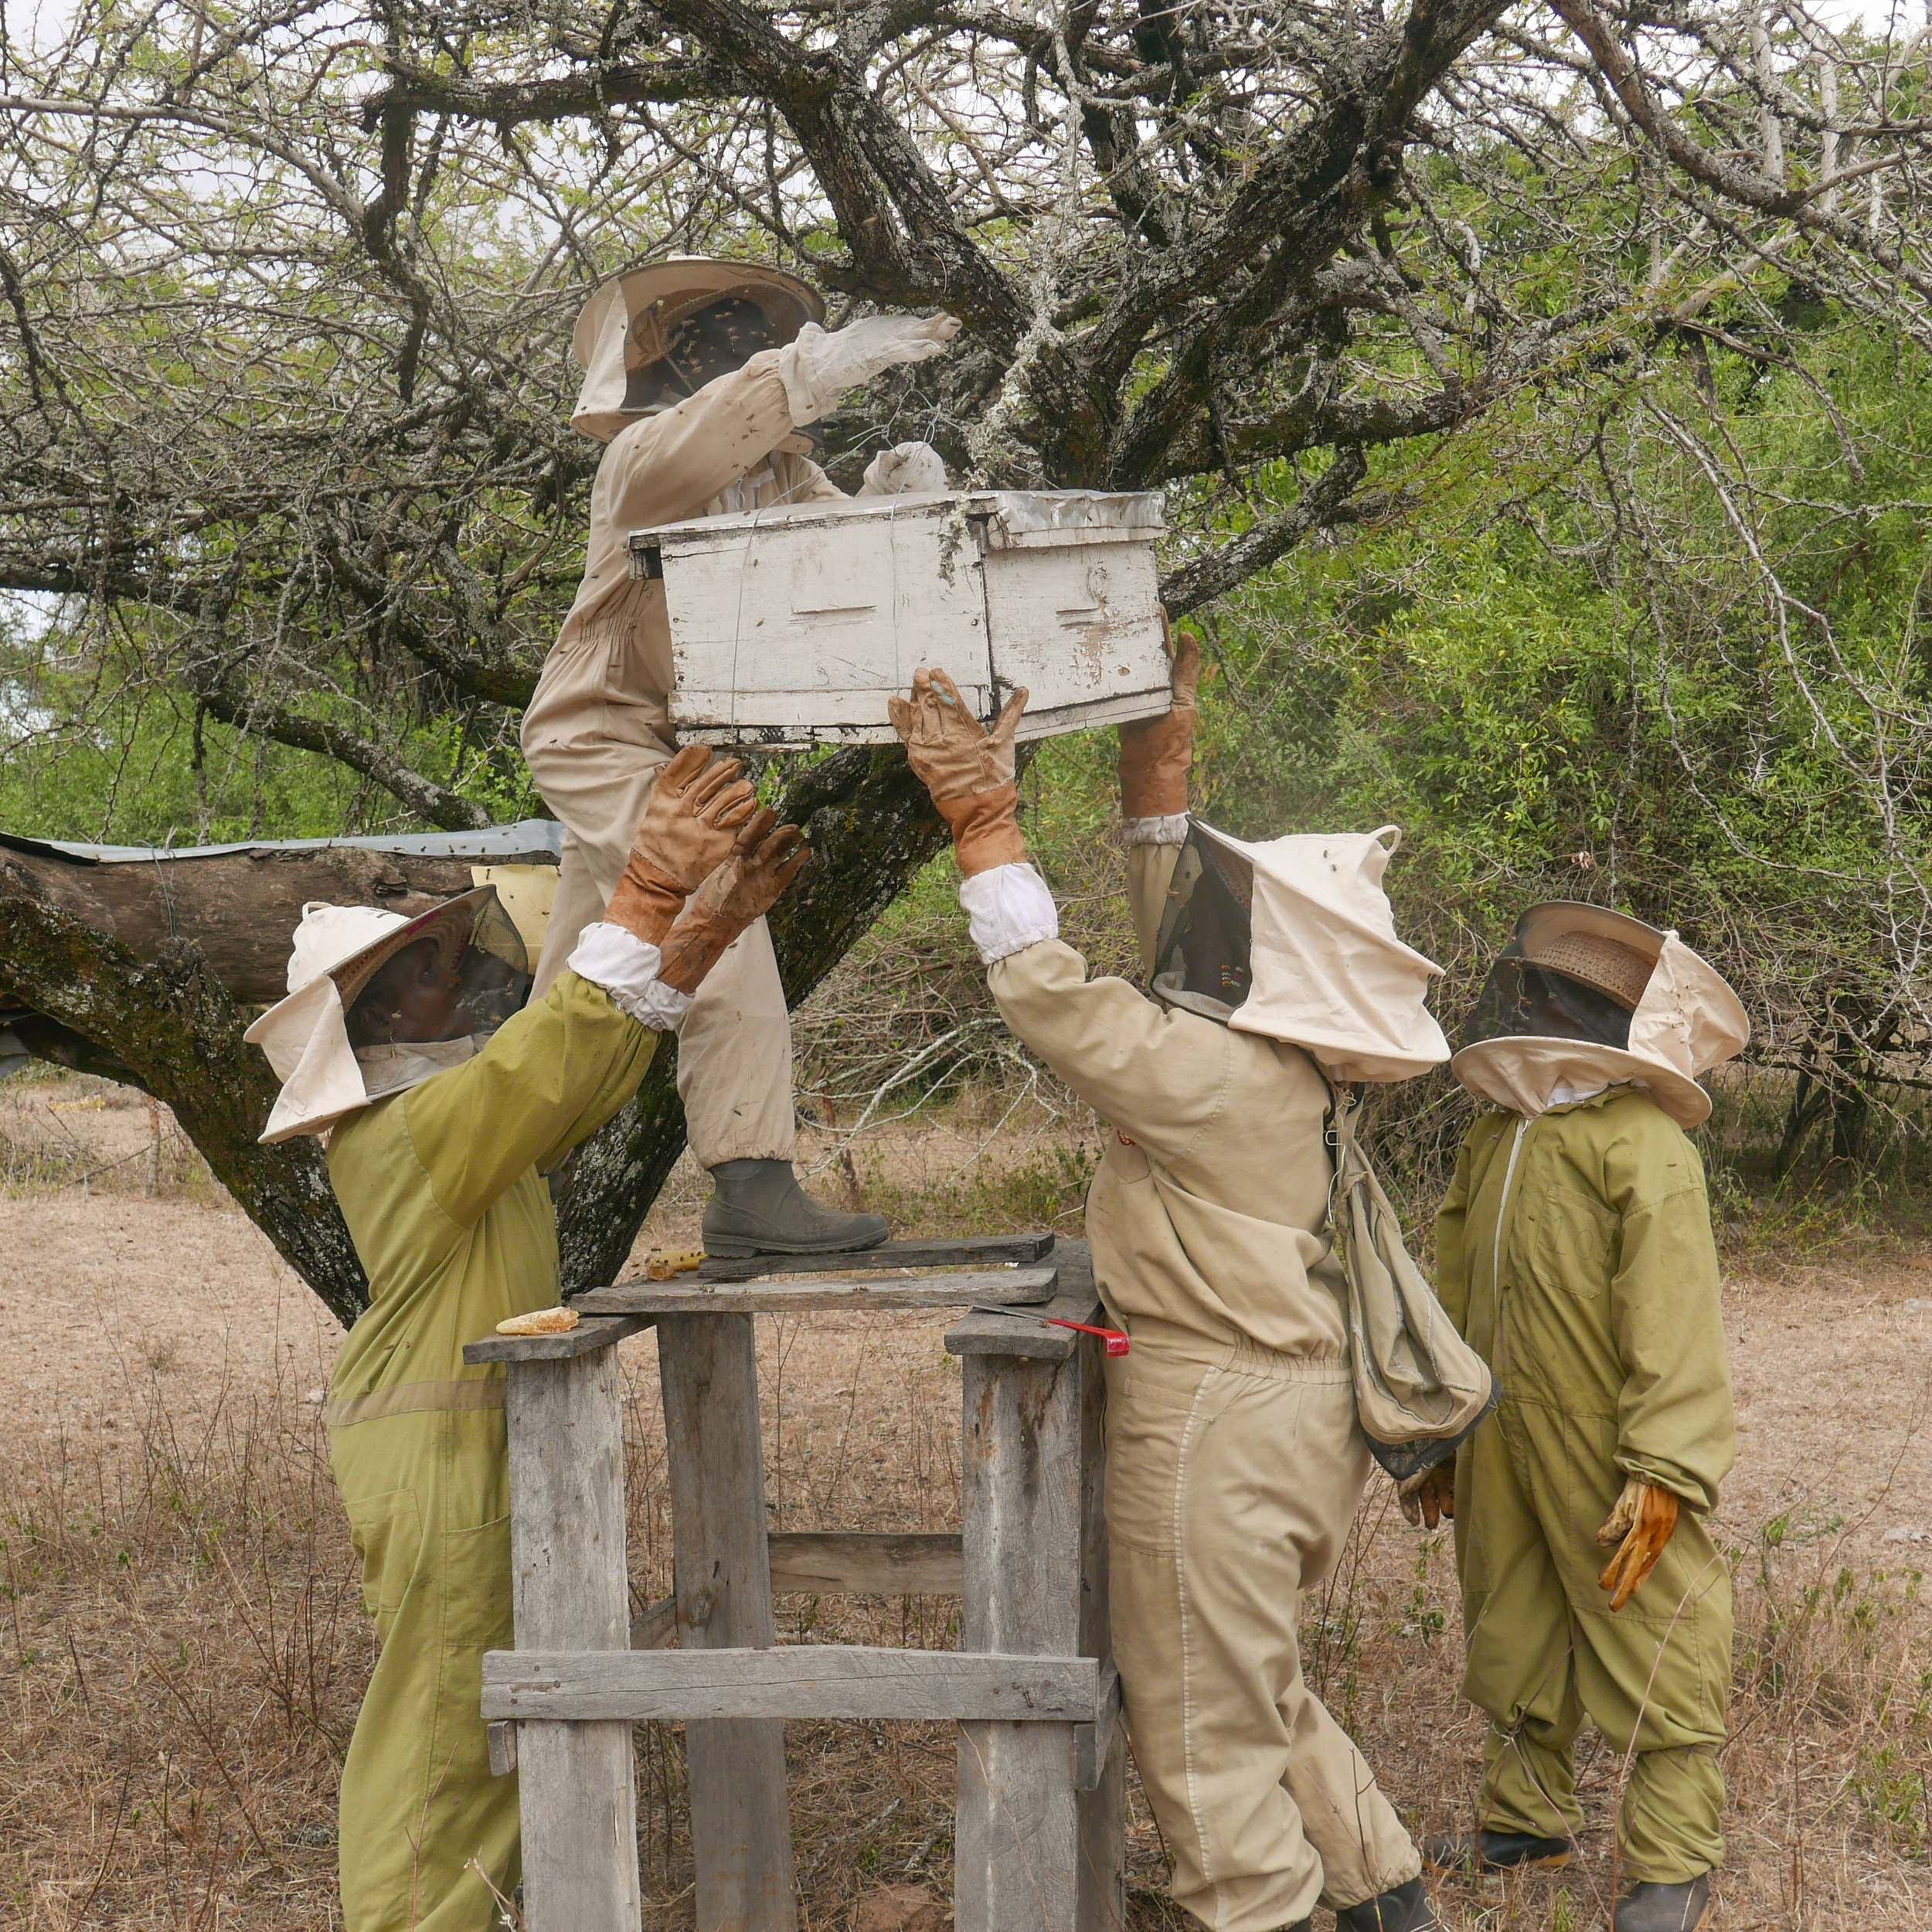 Beekeeping team members working together to lower a hive for inspection.